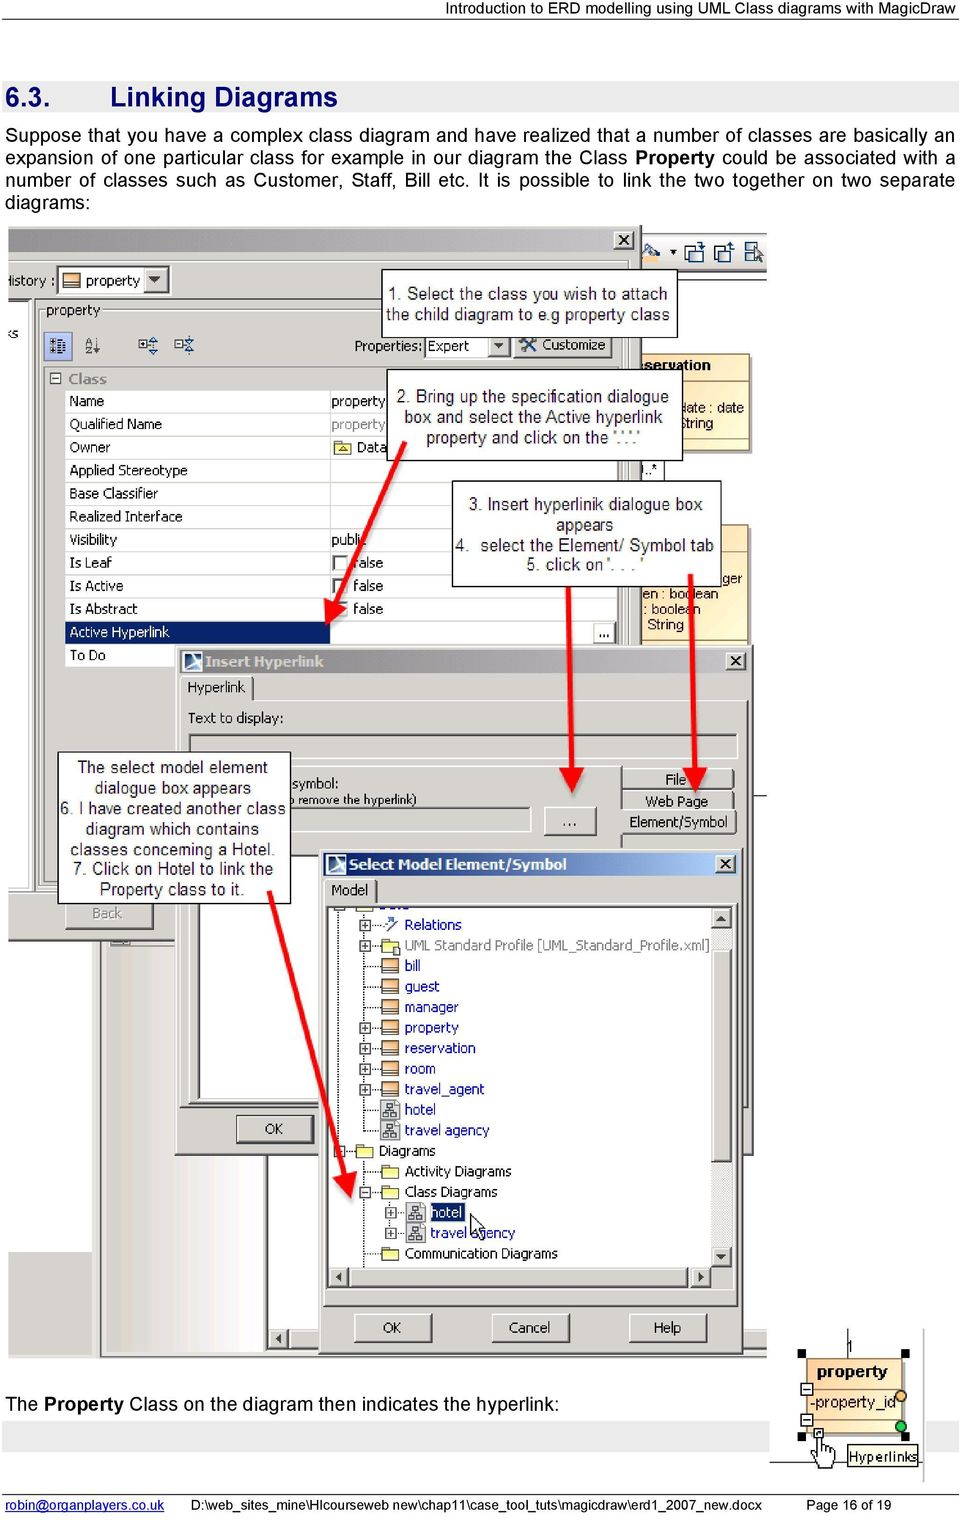 Introduction to erd modelling using uml class diagrams with customer staff bill etc ccuart Images